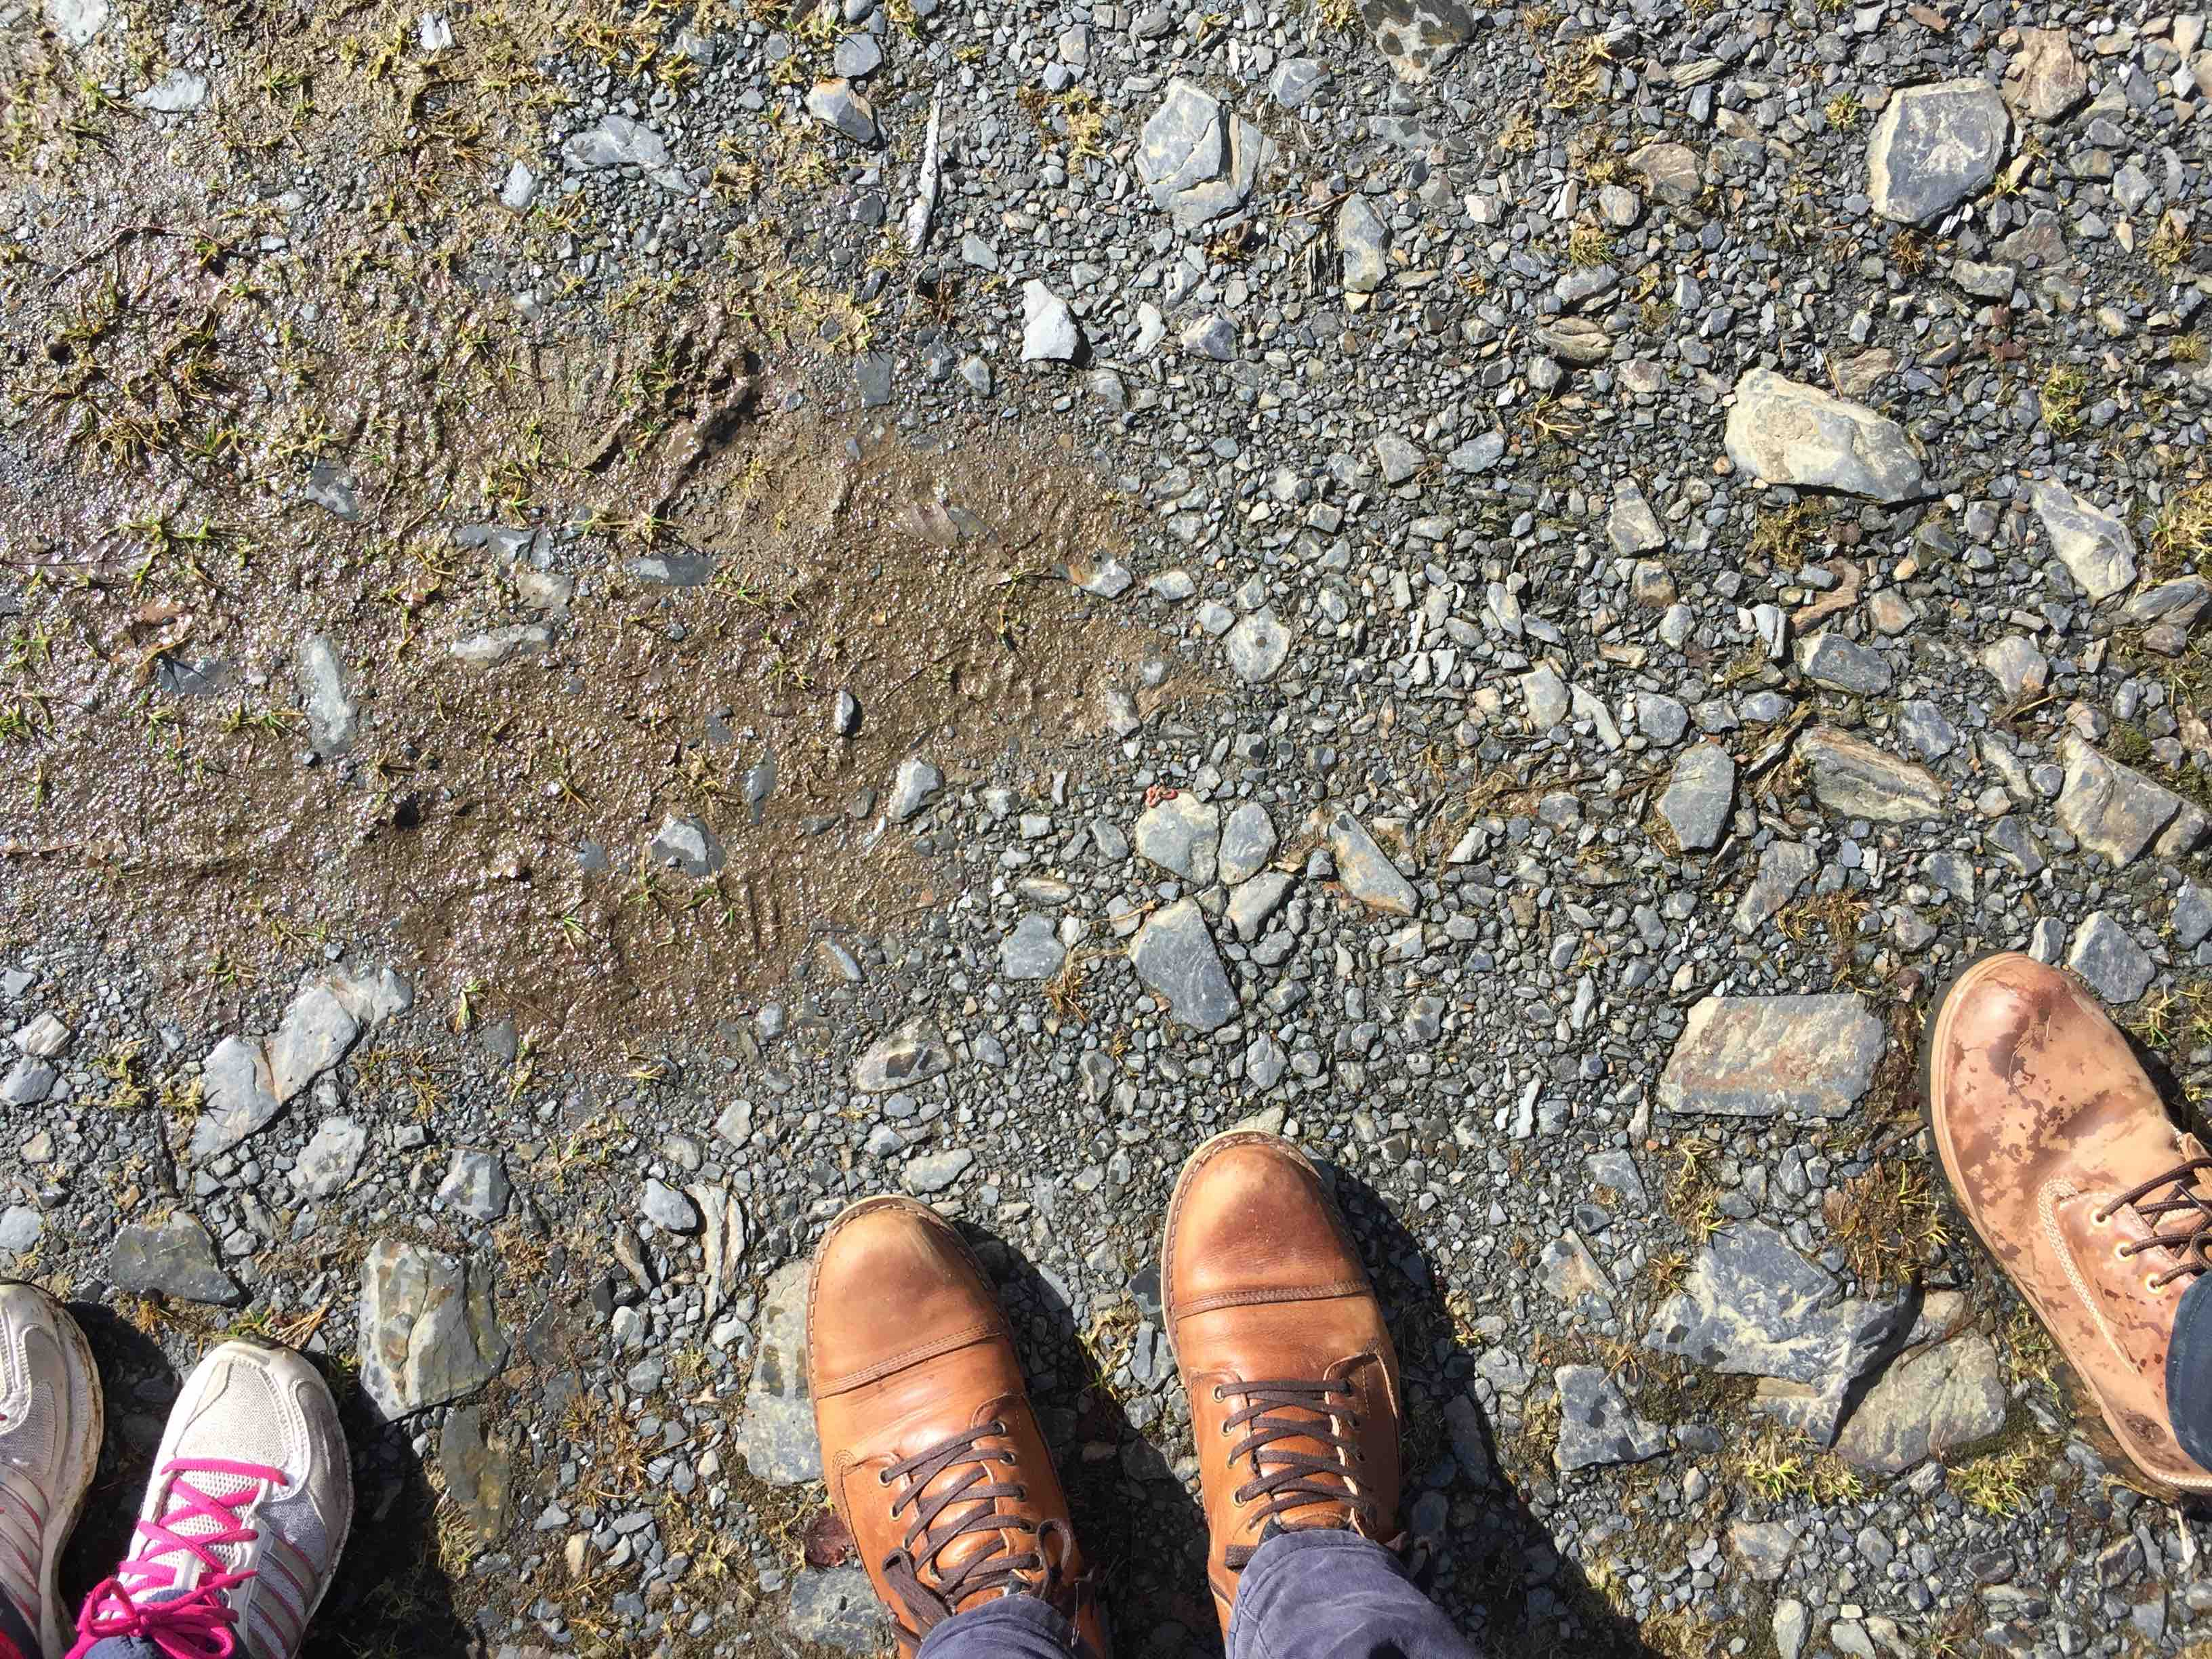 Step In Their Shoes - Youth Exchange - Hiking in Wales - United Kingdom - Abroadship.org